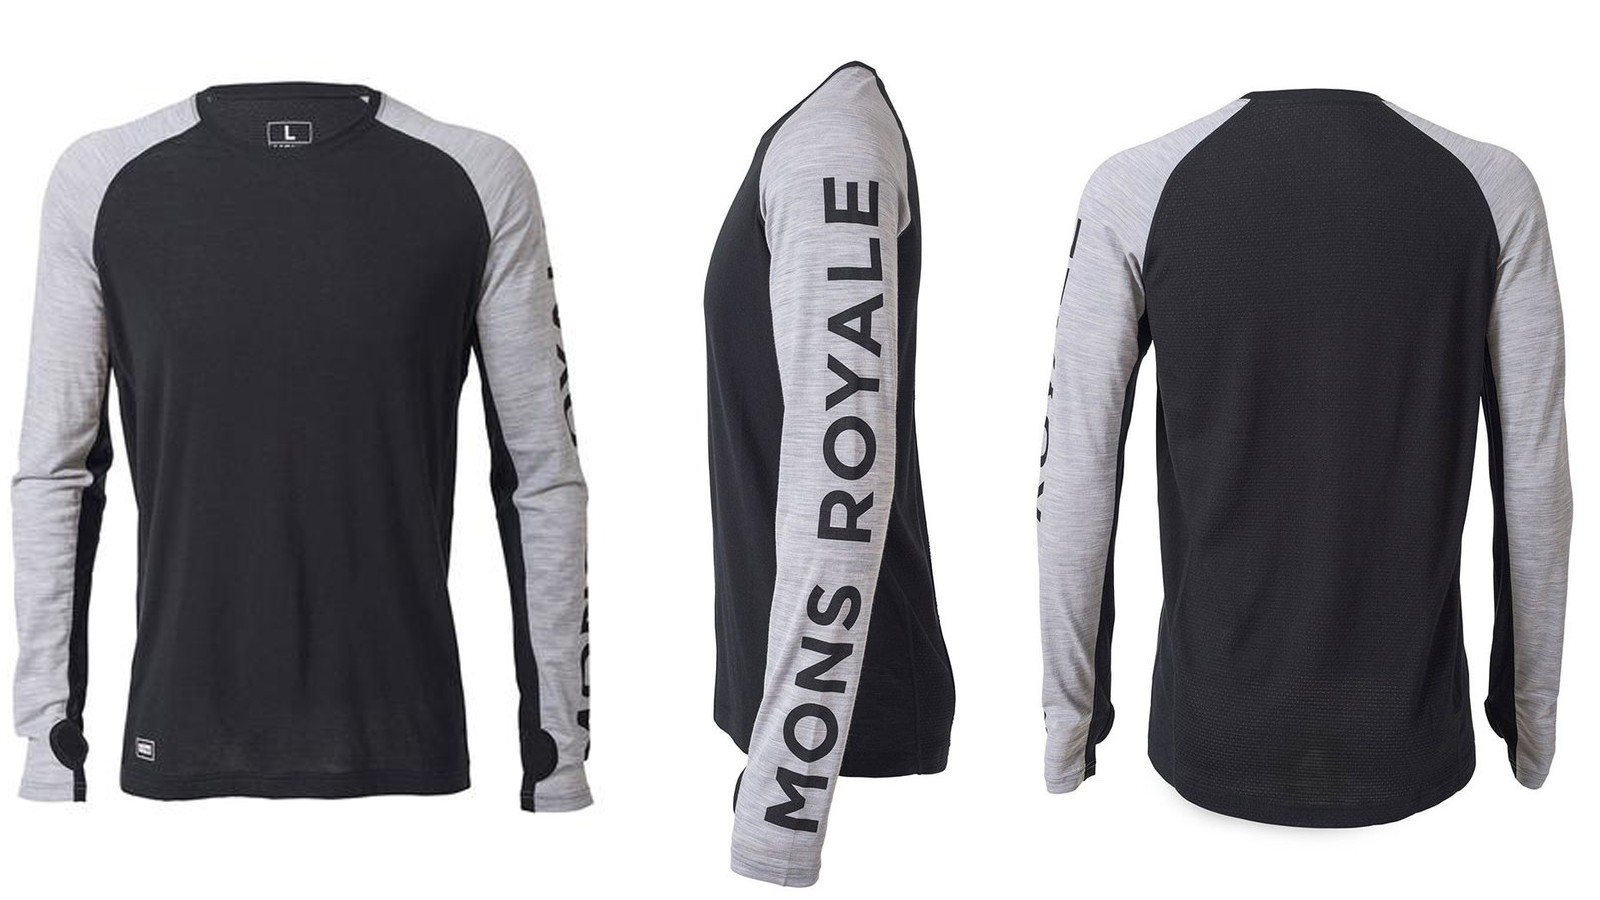 Mons Royale's Temple Tech LS baselayer is about as good as they come and the price reflects that